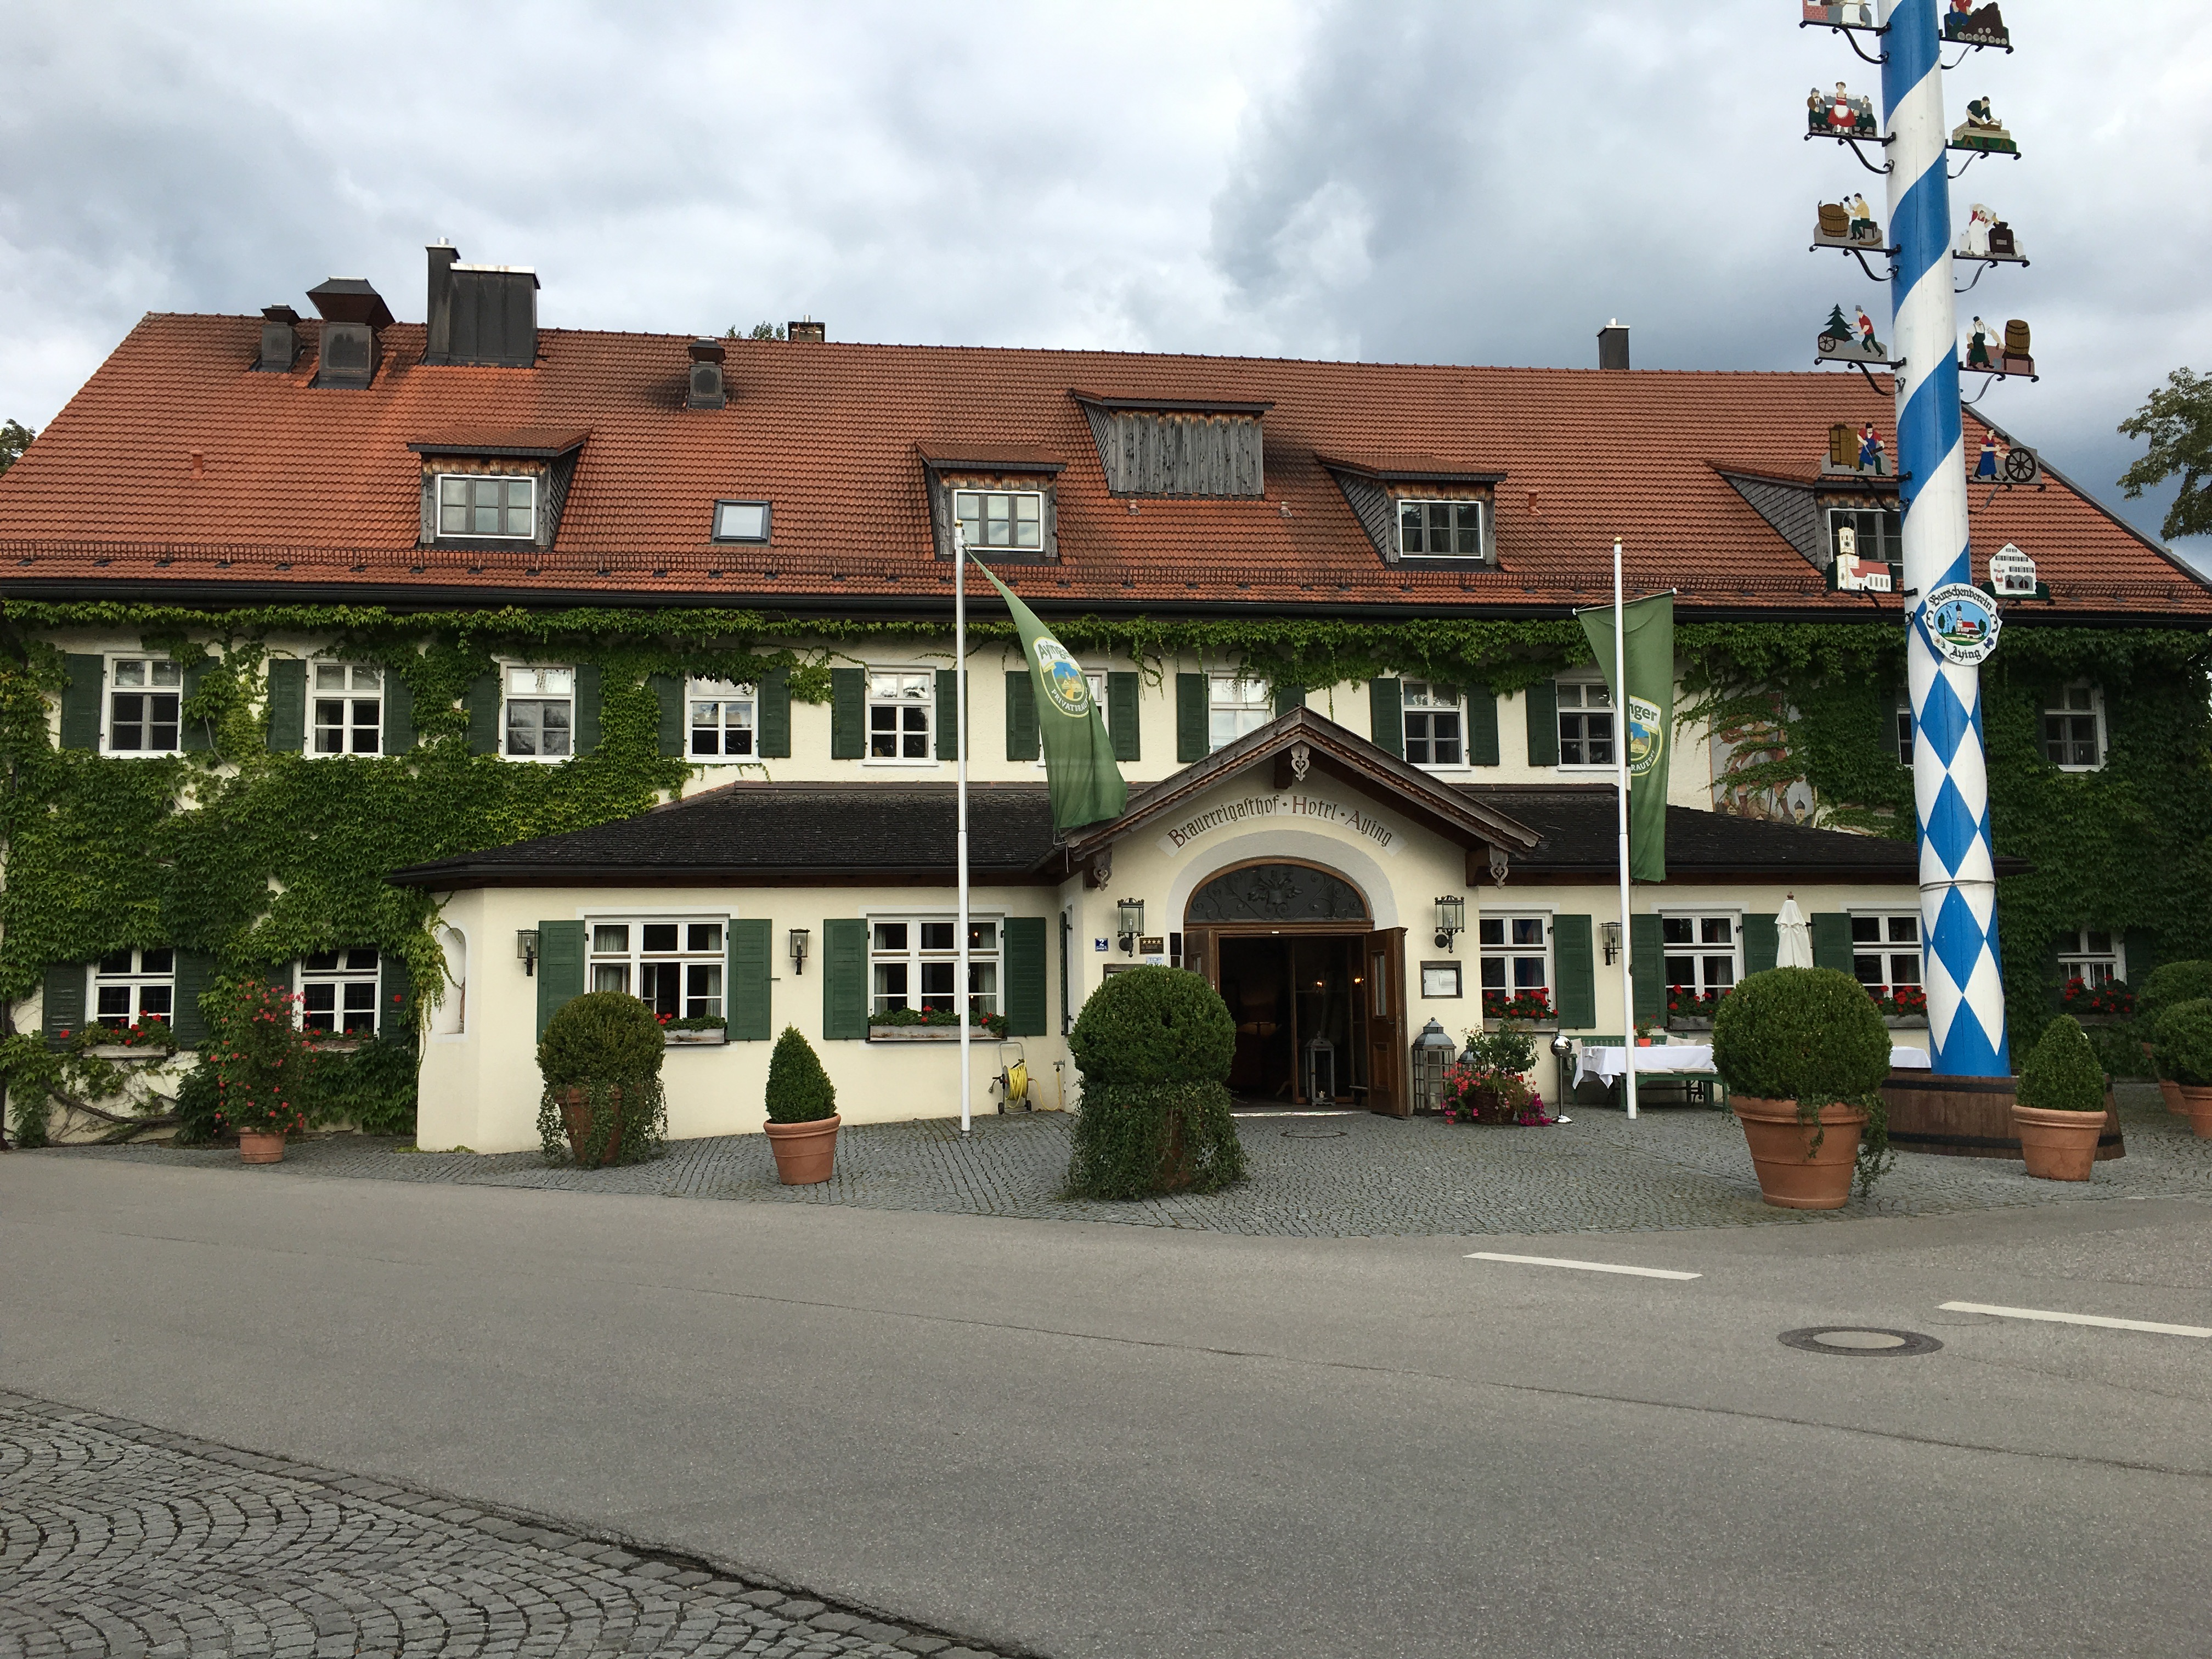 Less than a block away from Ayinger Braustuberl is Brauereigasthof Hotel Aying.